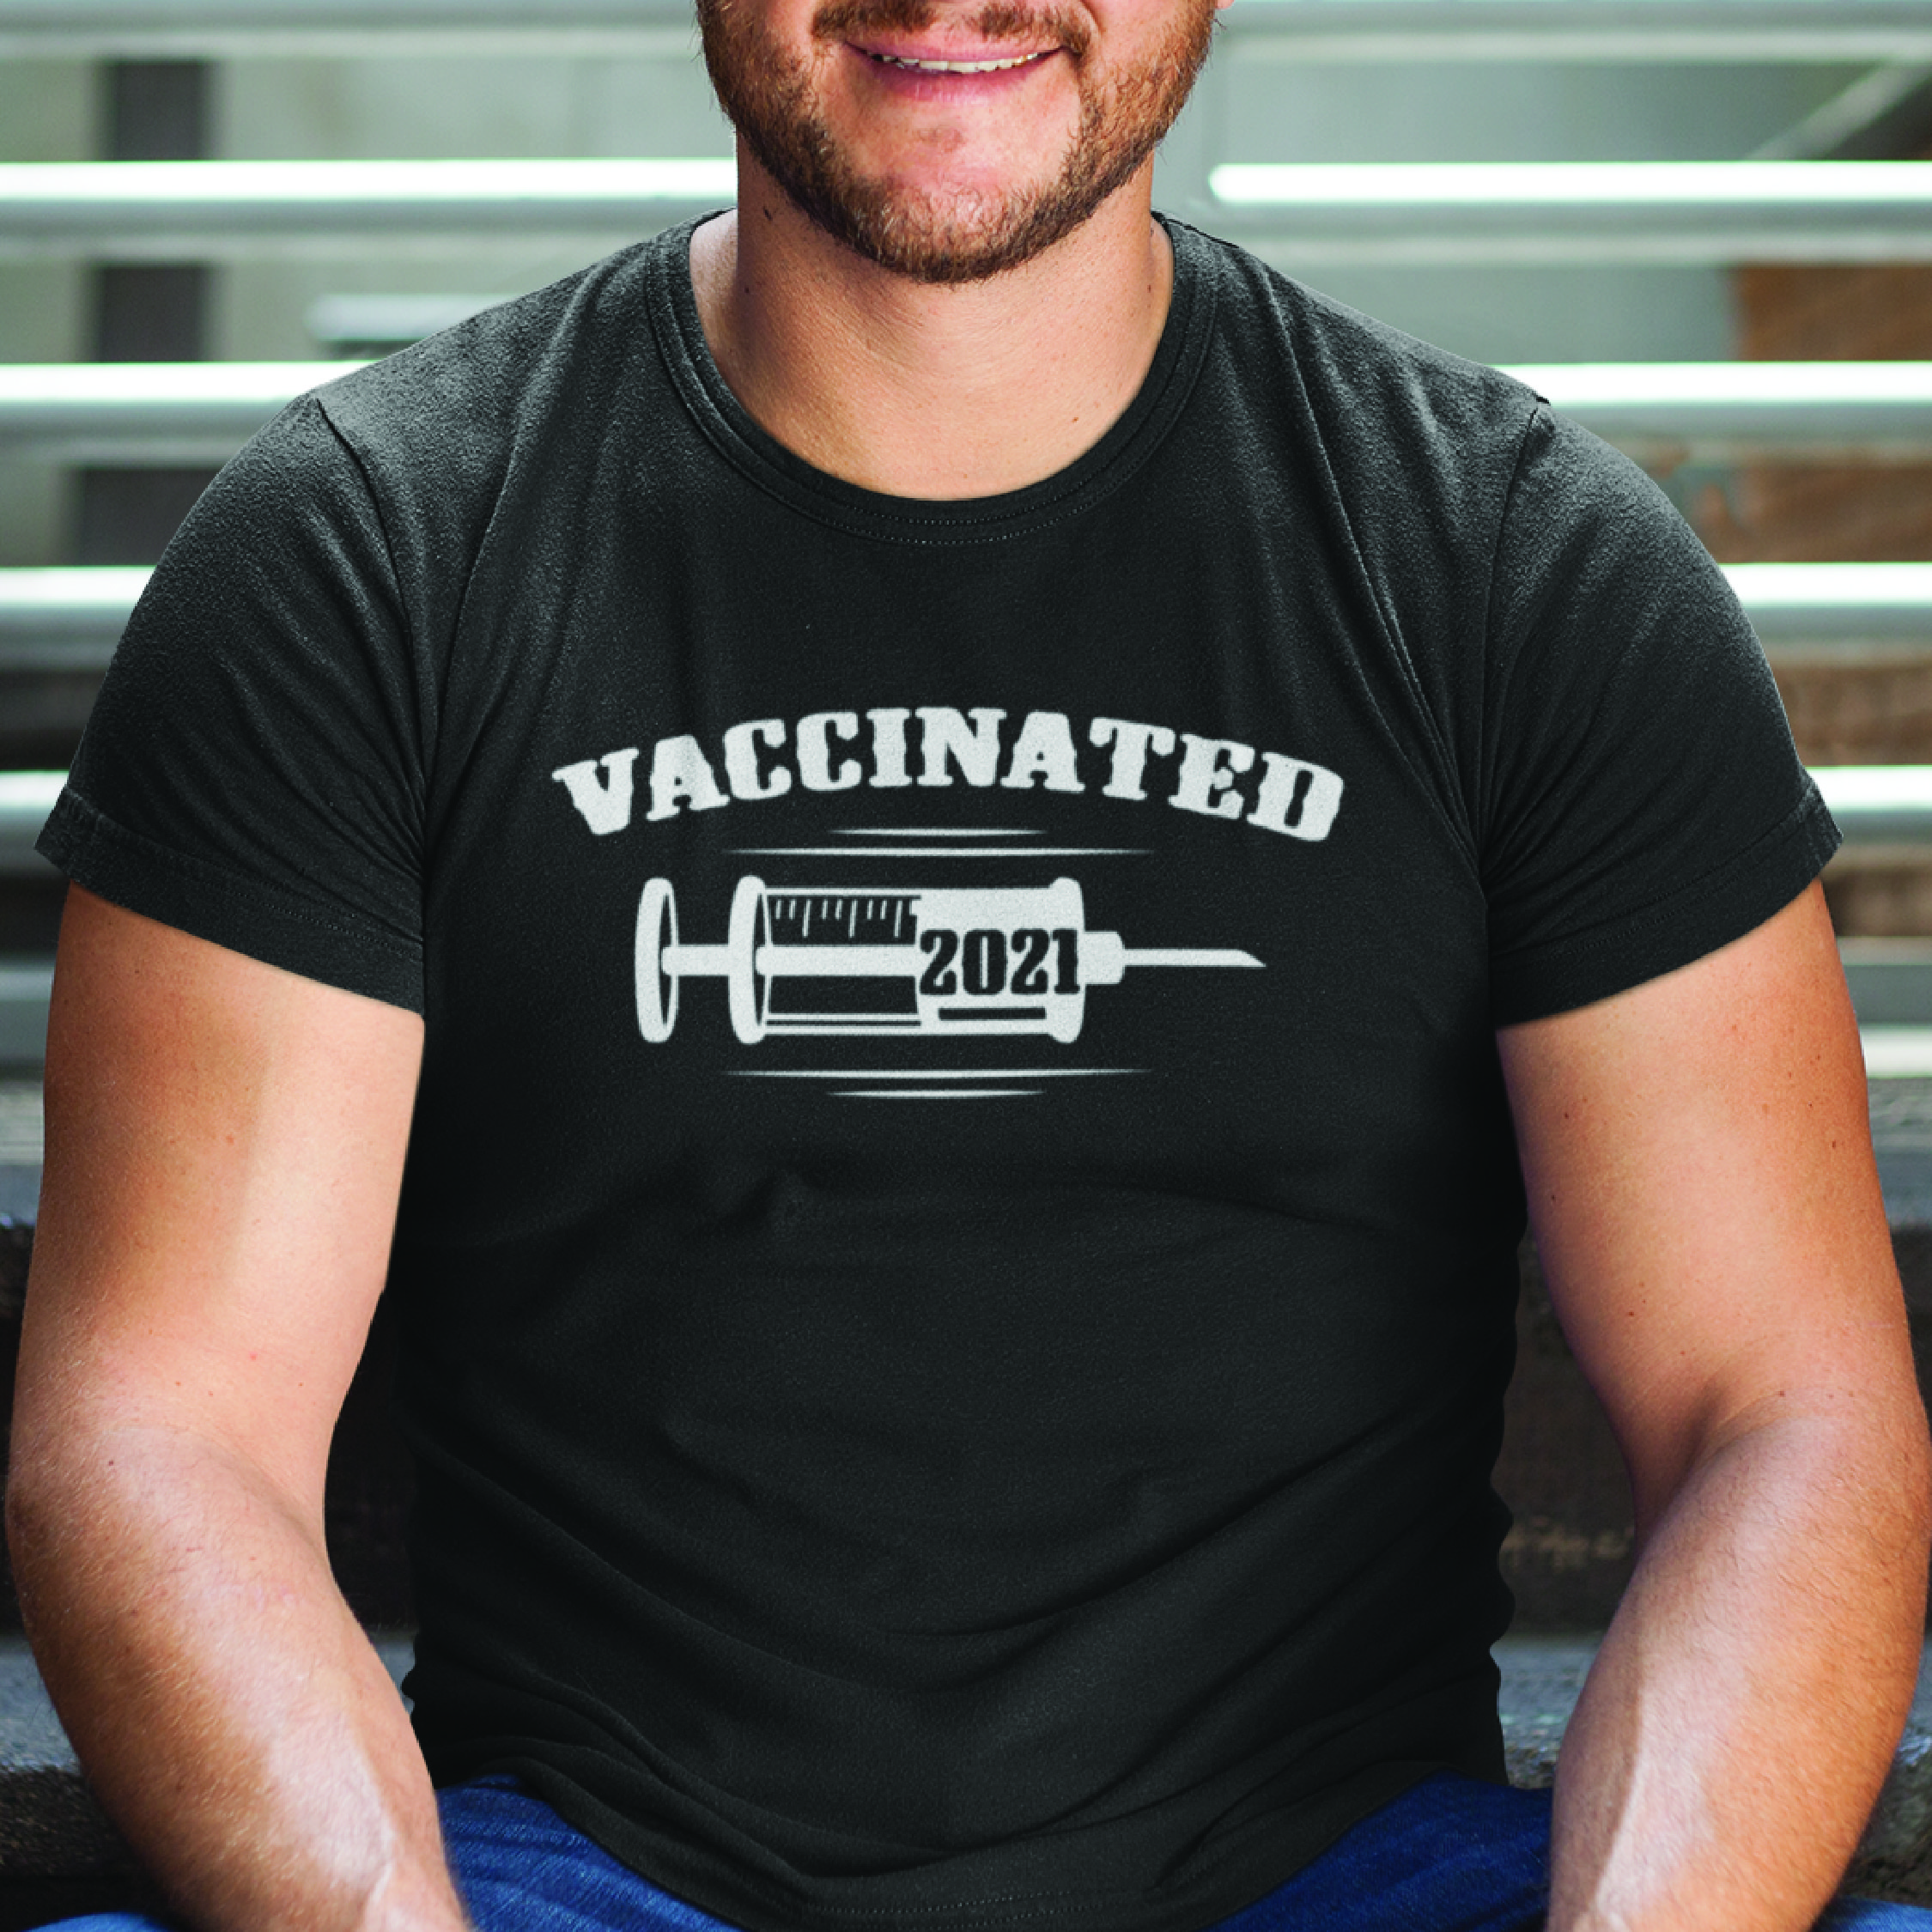 Vaccinated T Shirt Vaccination Day 2021